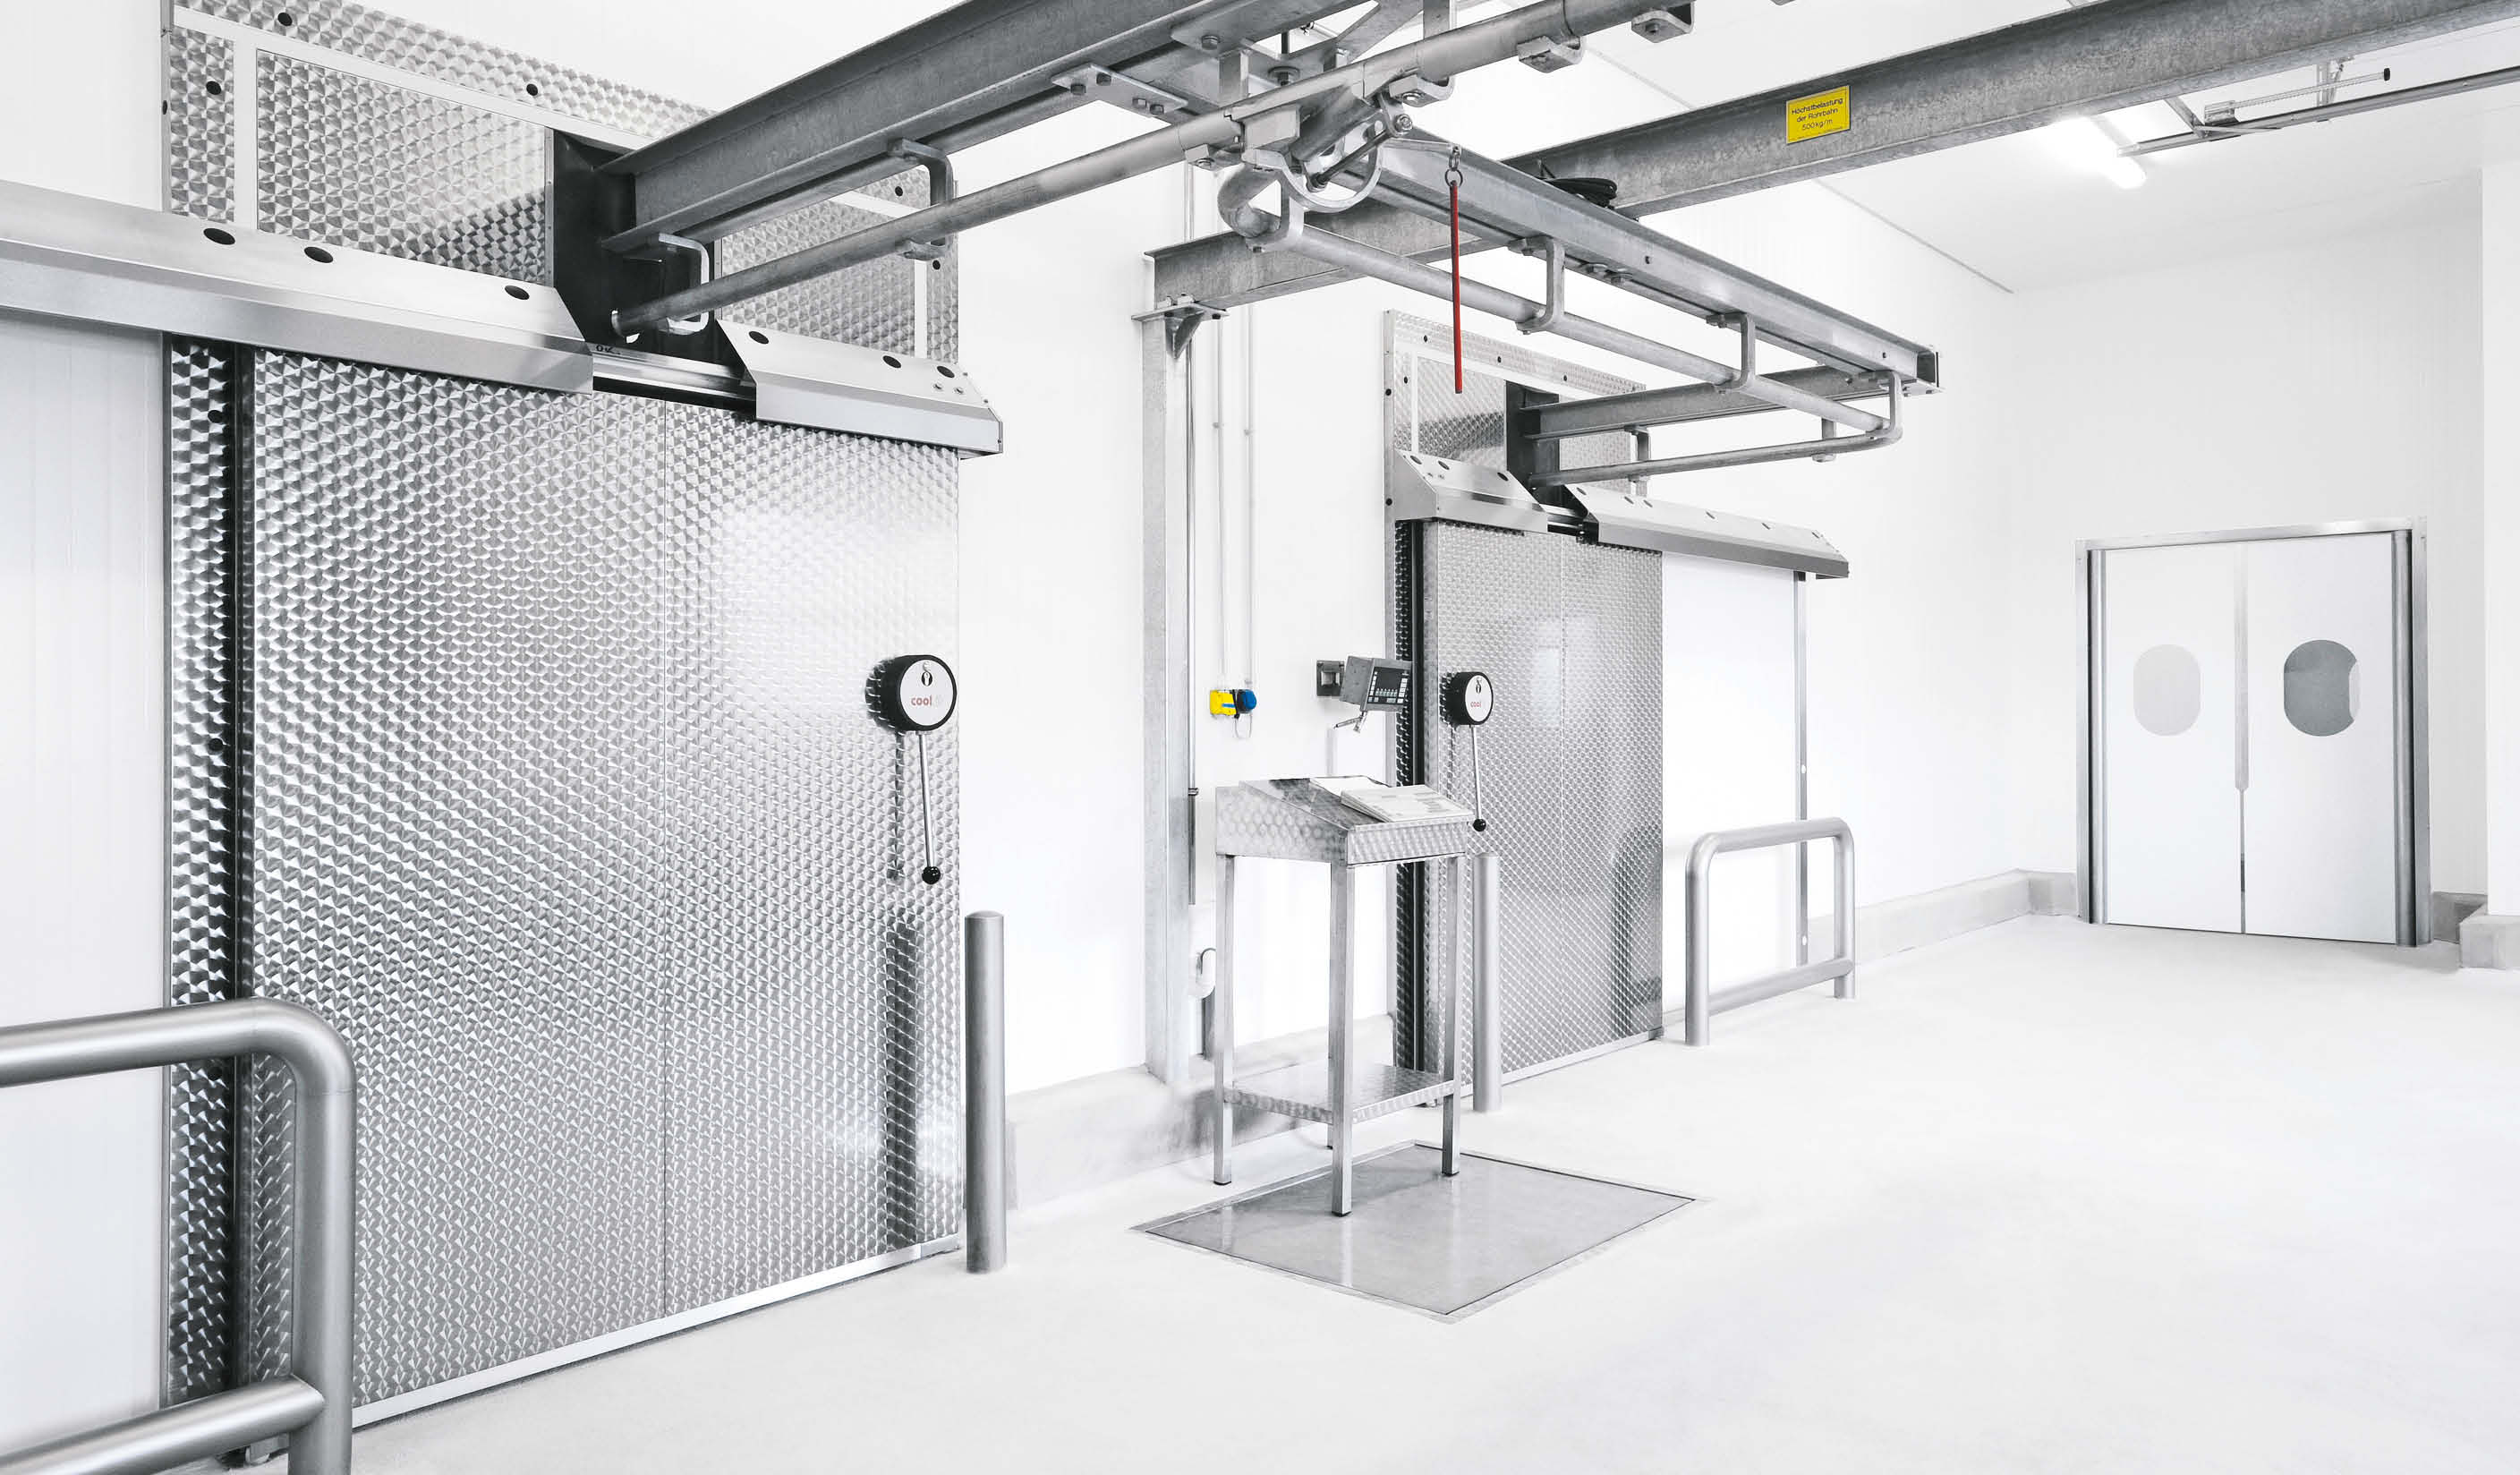 CE8 Sliding door for chillers with meat rail passage